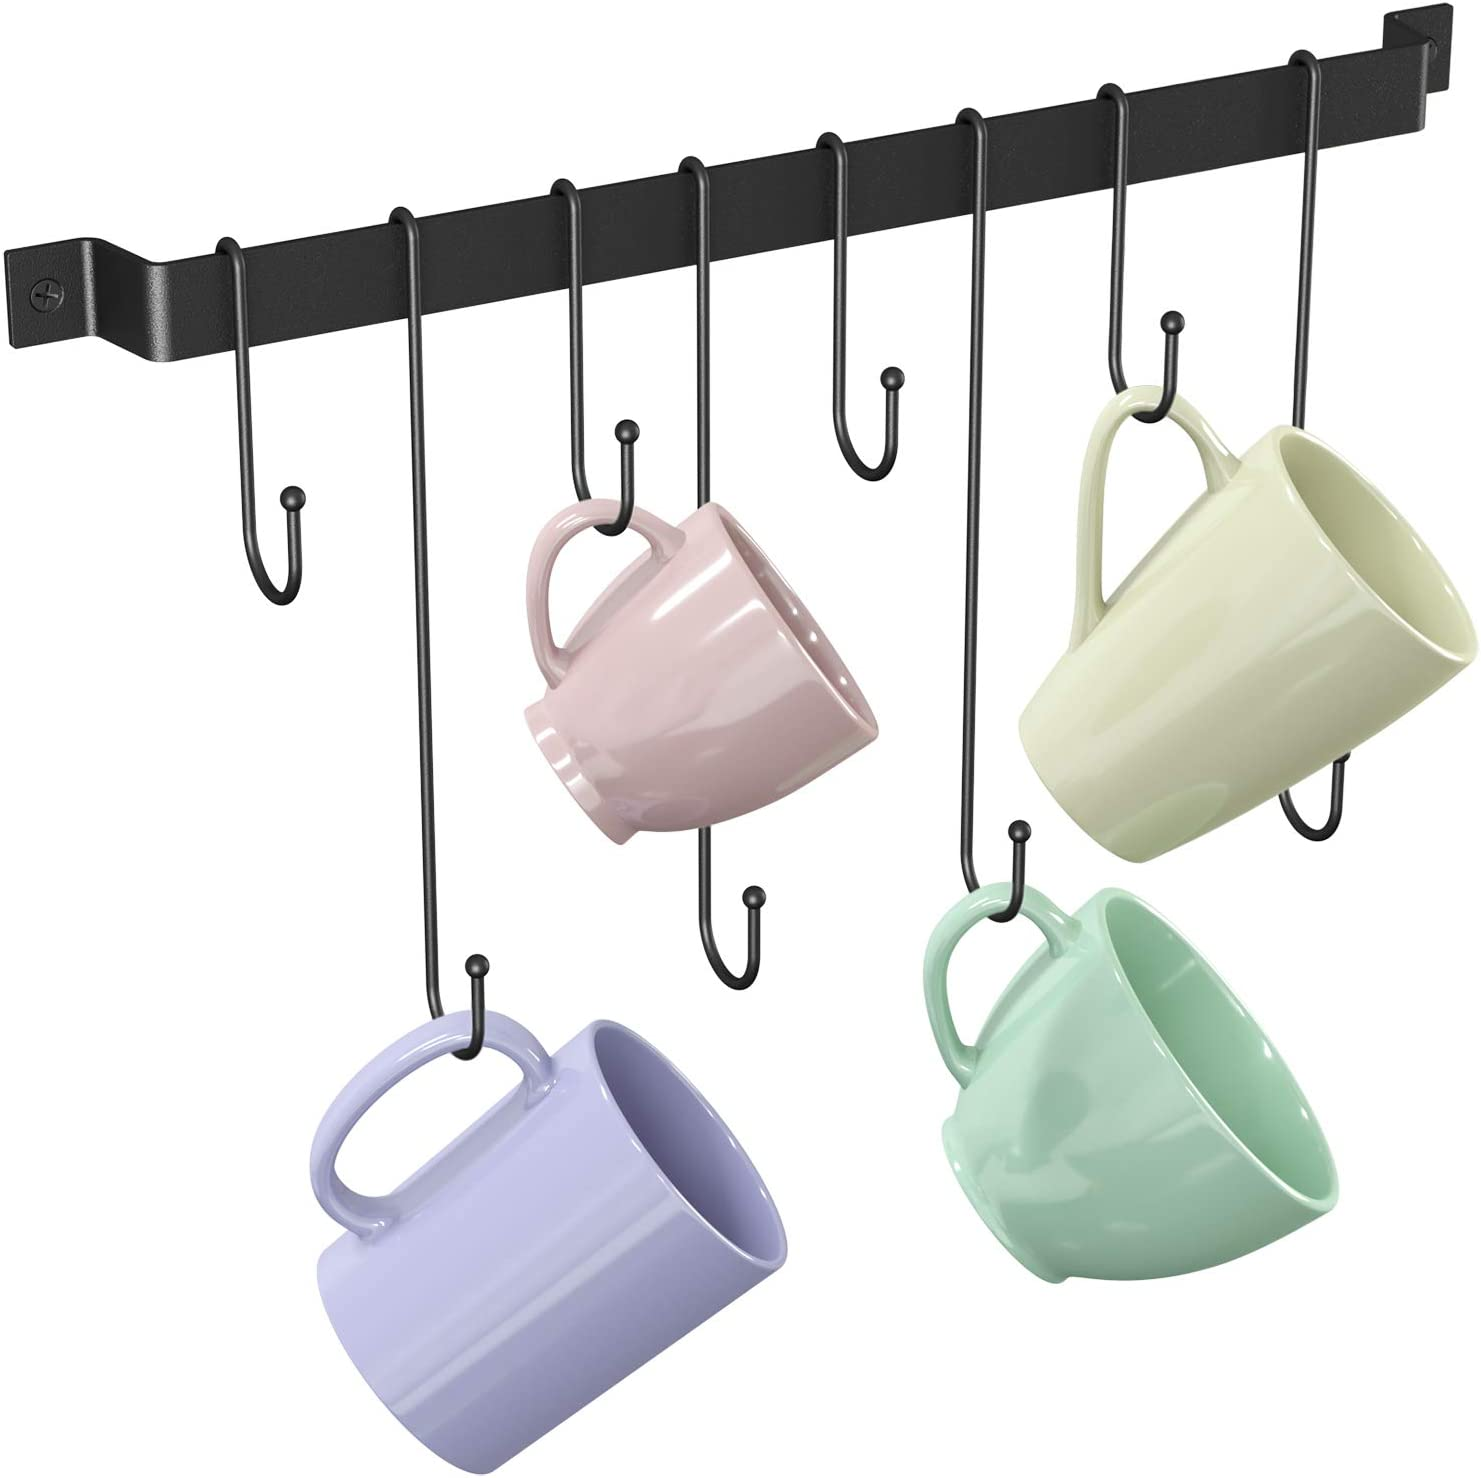 Tibres - Coffee Mug Popular brand in the world Holder Wall Rack with M Mounted Ultra-Cheap Deals Cup